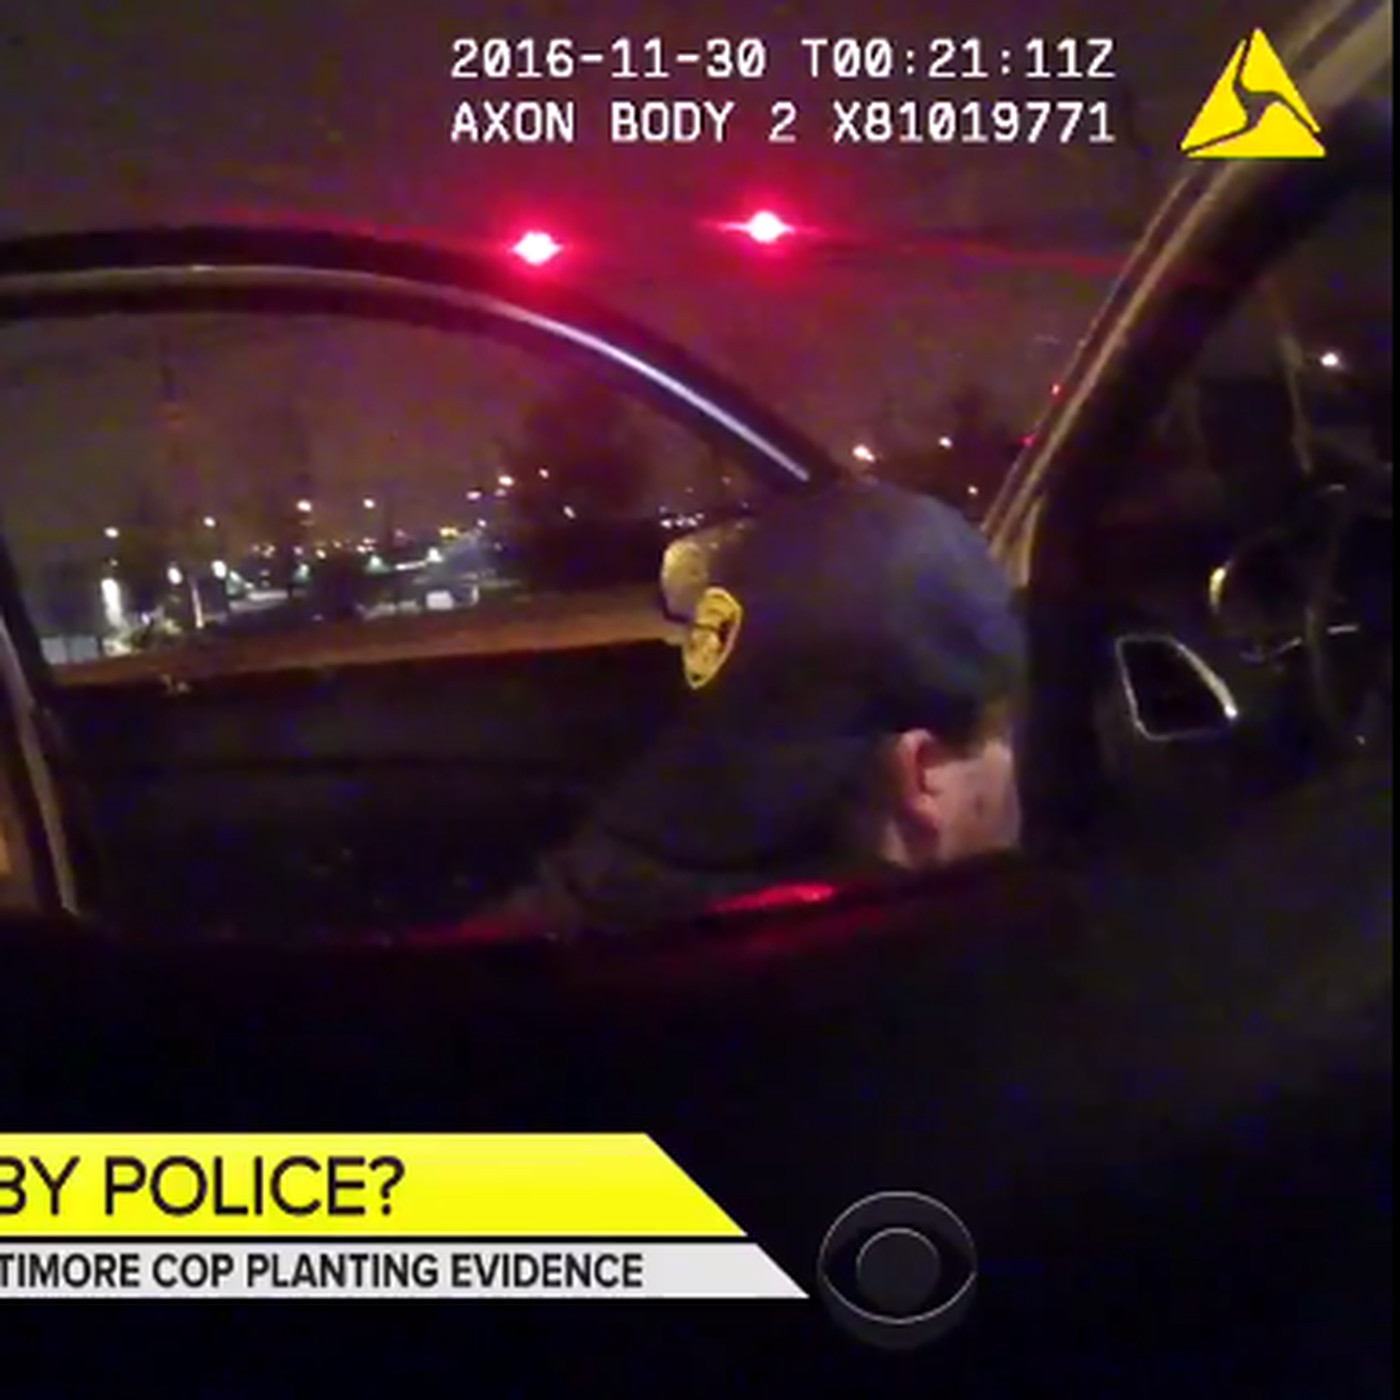 Baltimore police officers accidentally filmed themselves